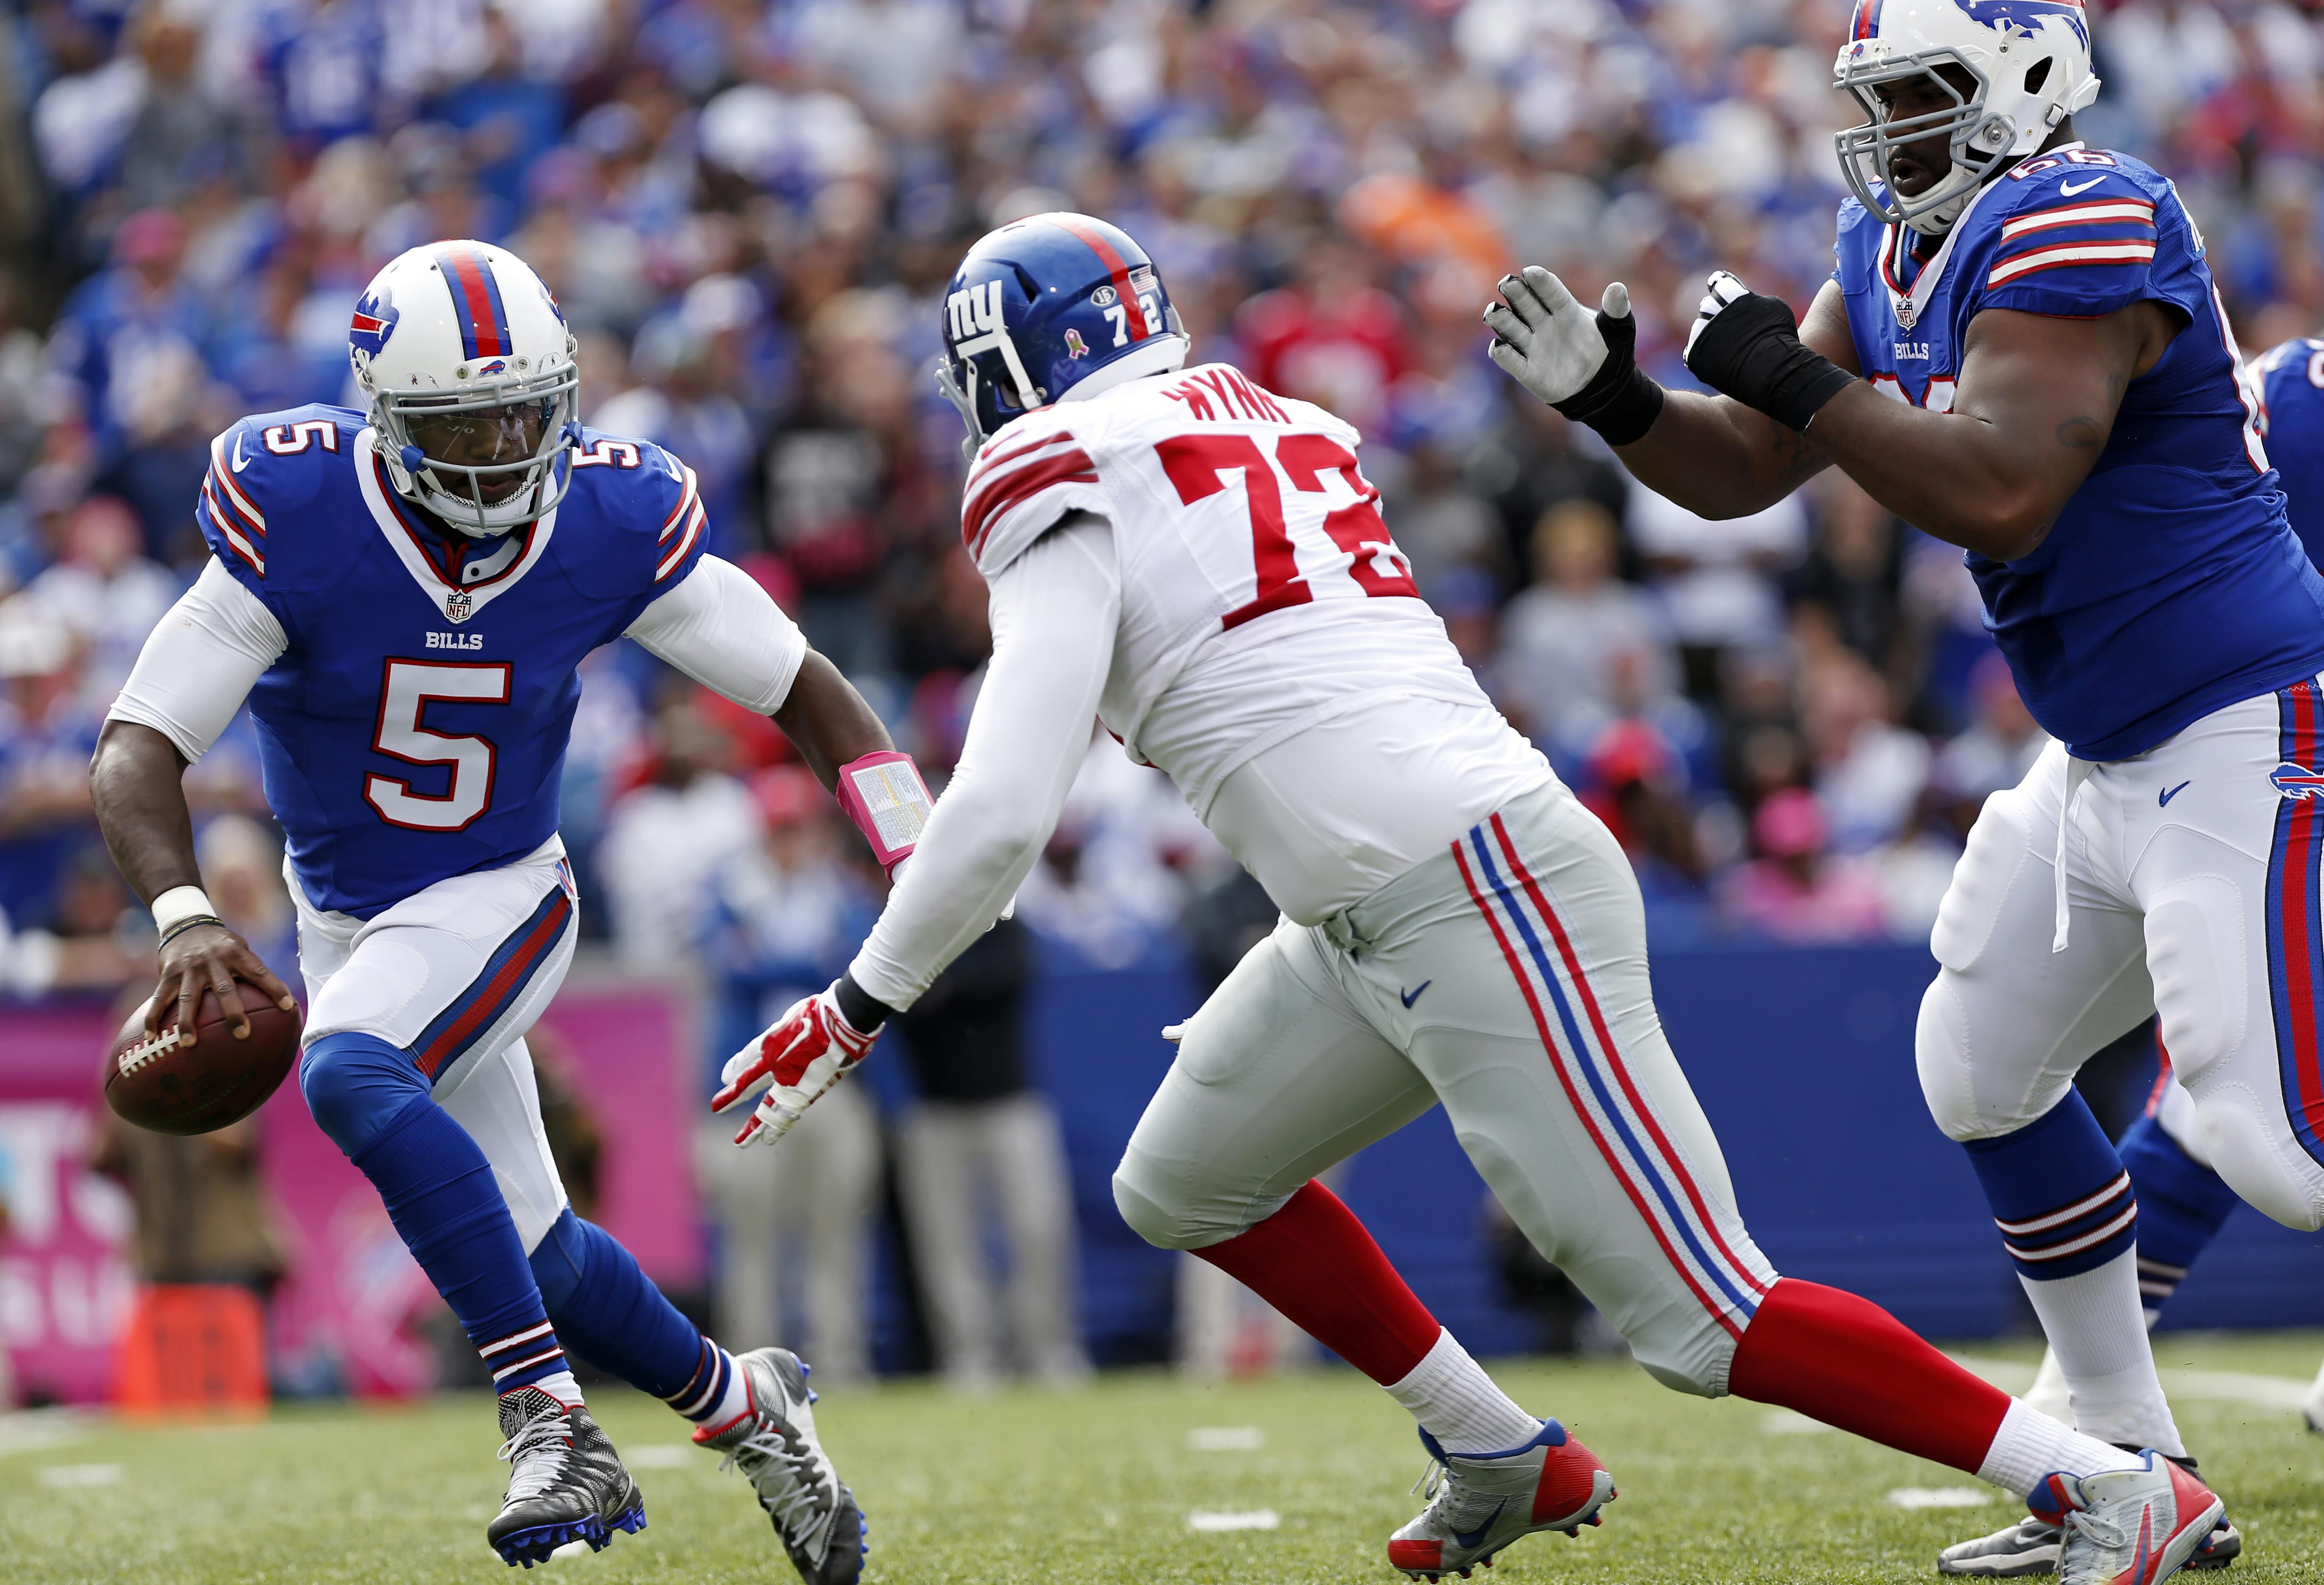 Kerry Wynn of the Giants chases Tyrod Taylor